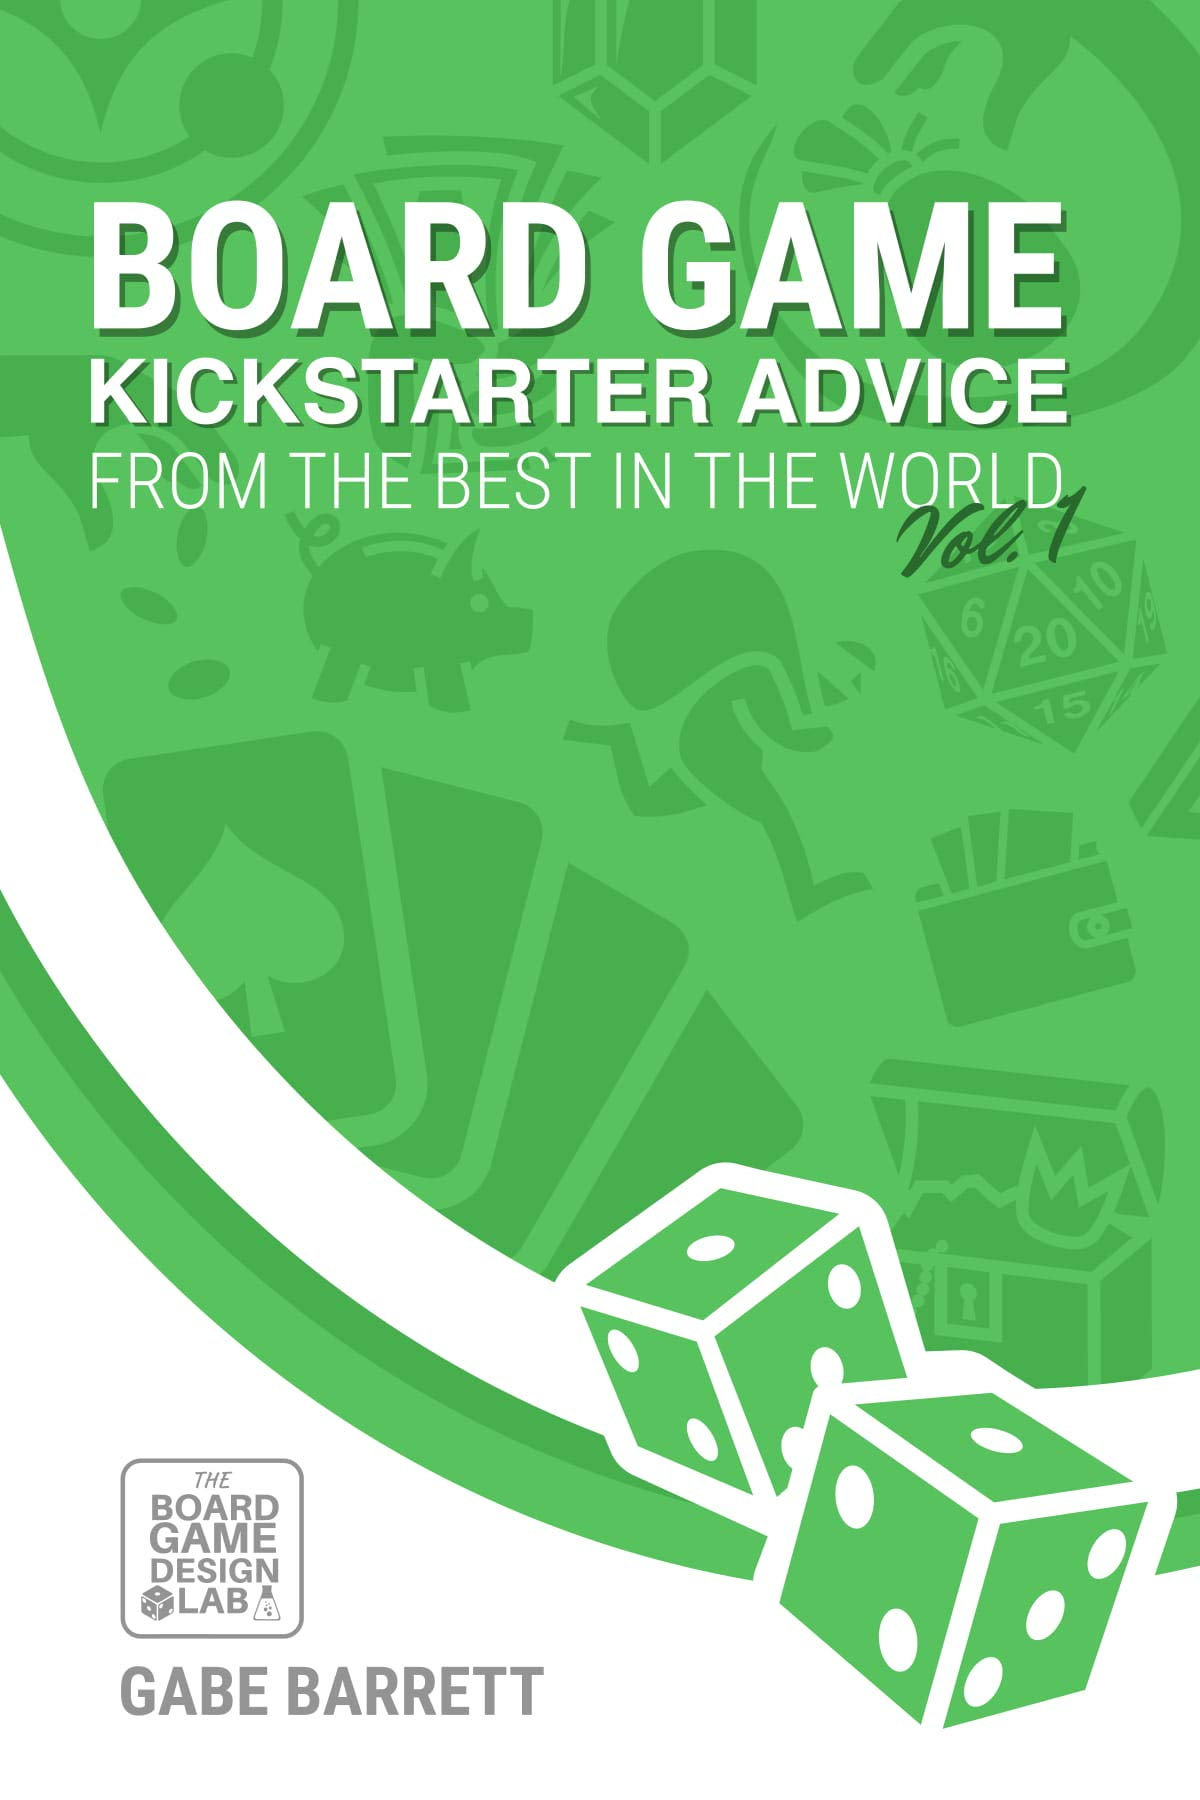 Board Game Kickstarter Advice: From the Best in the World